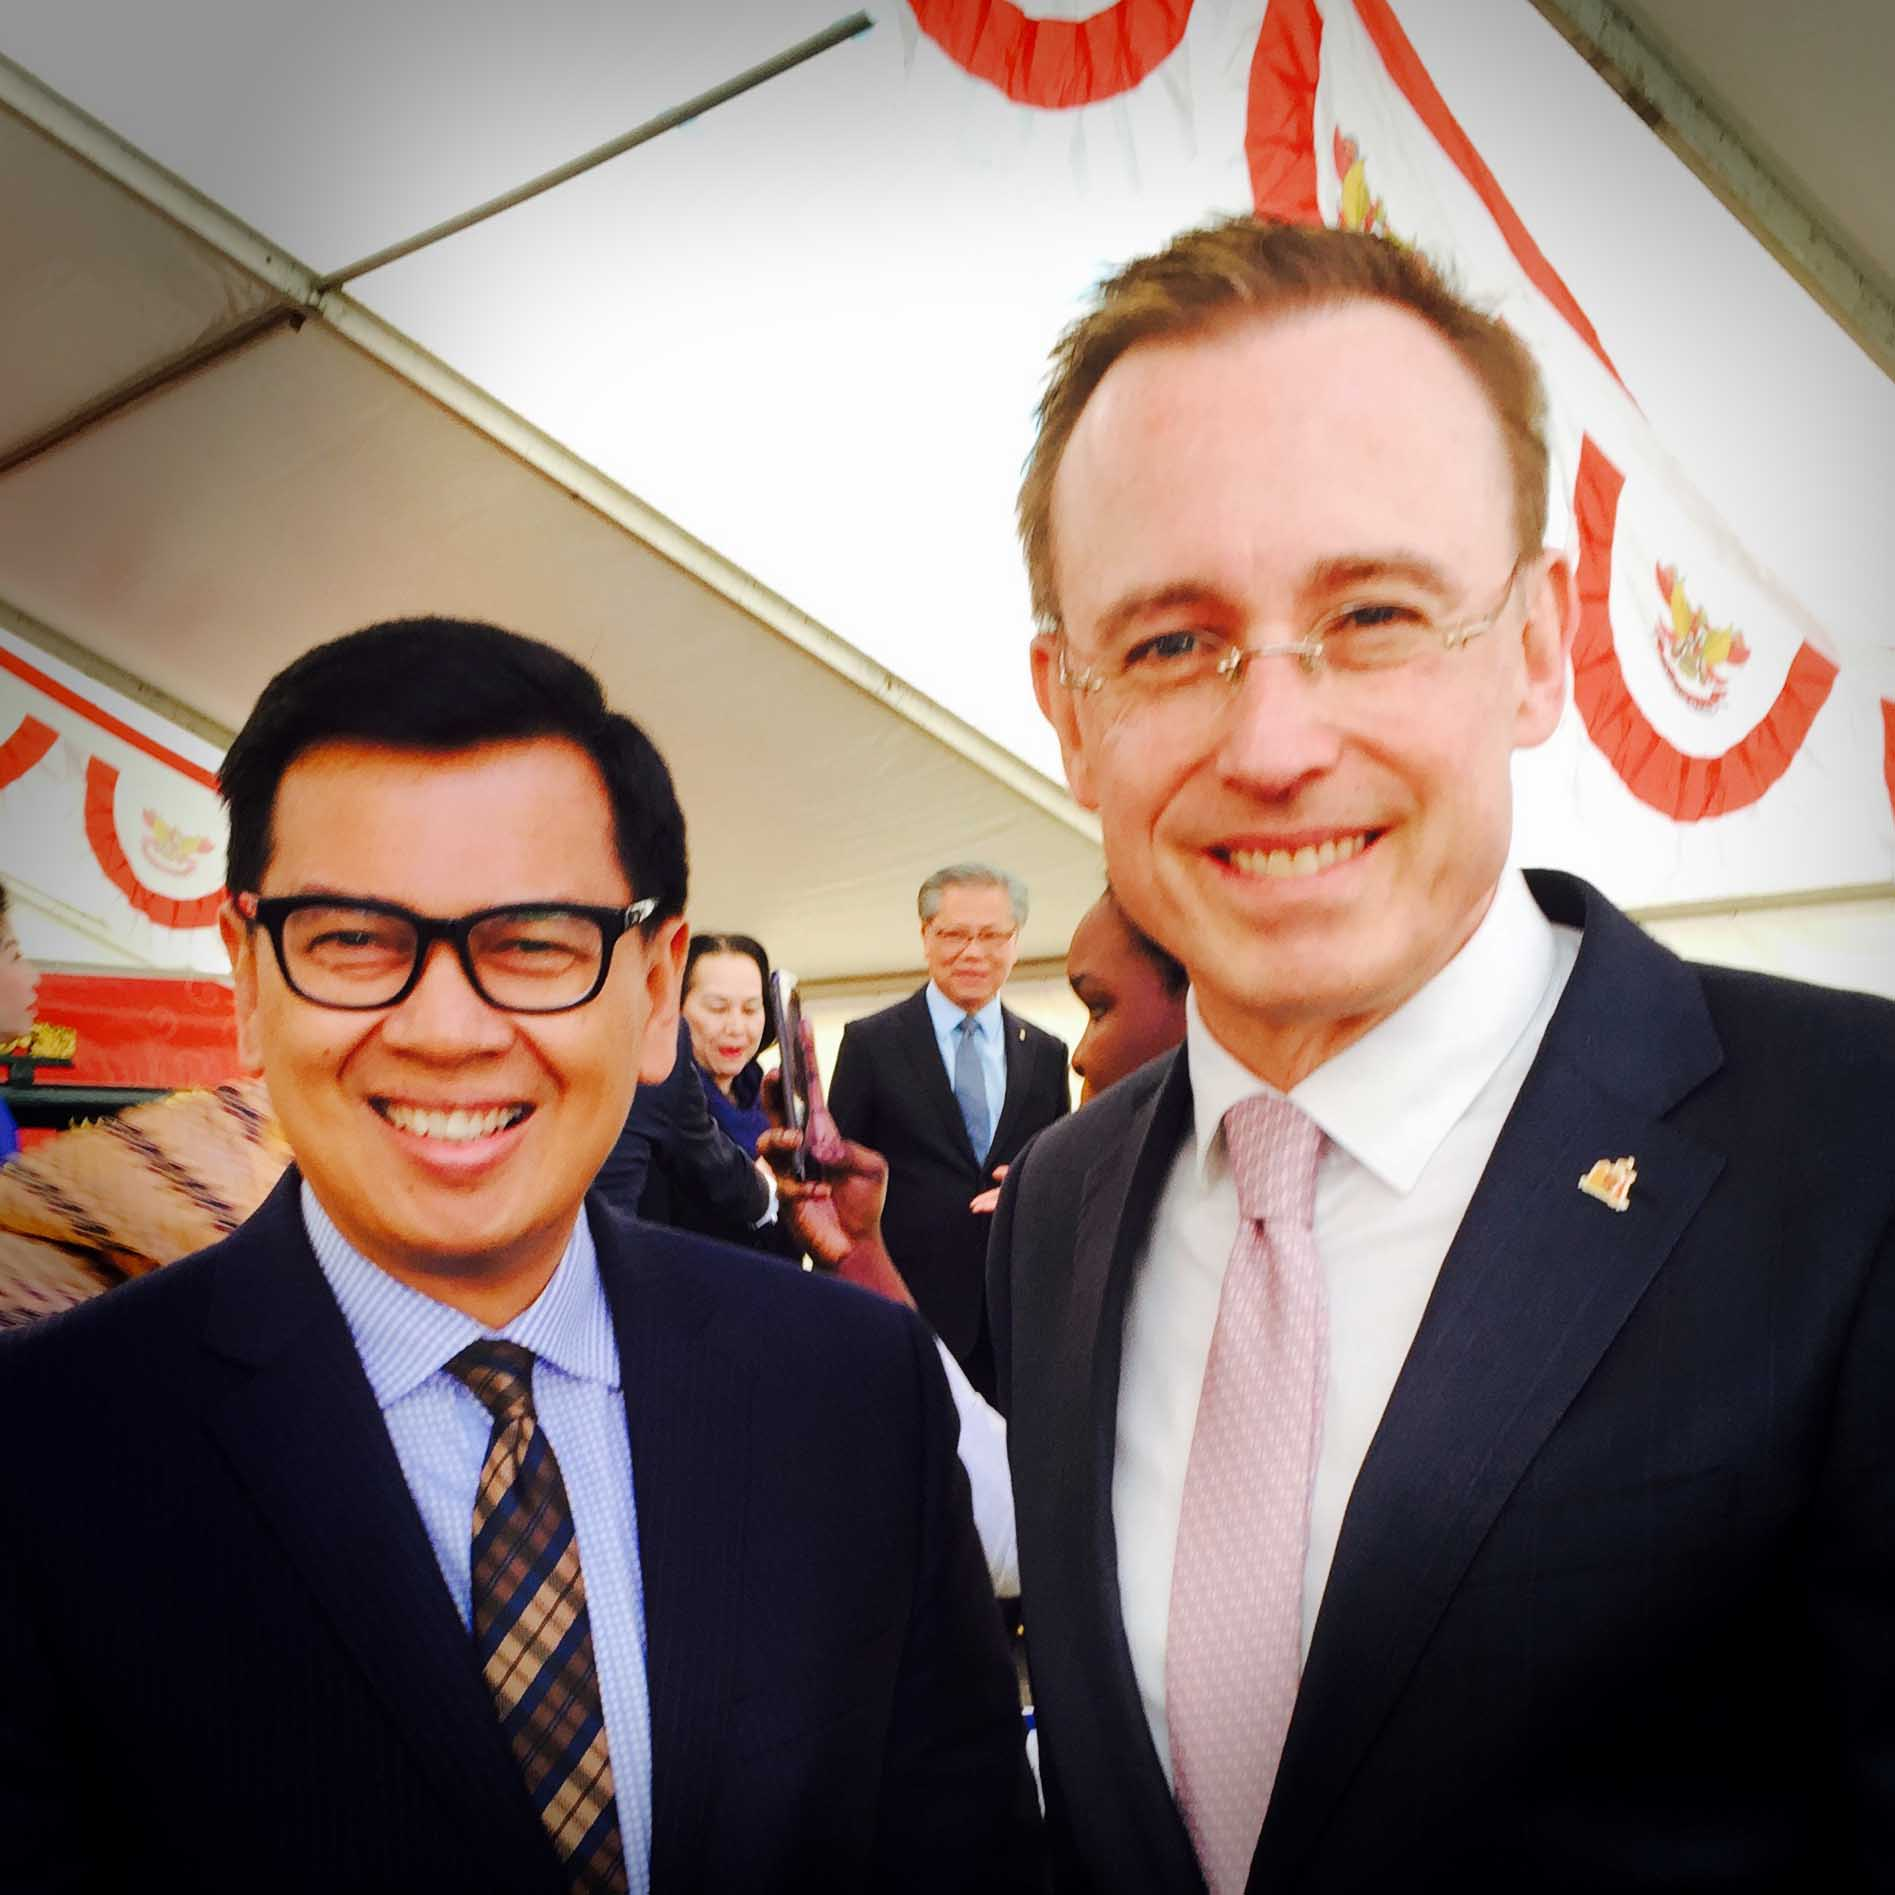 Lord Mayor Martin Haese with His Excellency Yohanes Kristiarto Soeryo Legowo Ambassador of Indonesia to Australia City of Adelaide IndoFest